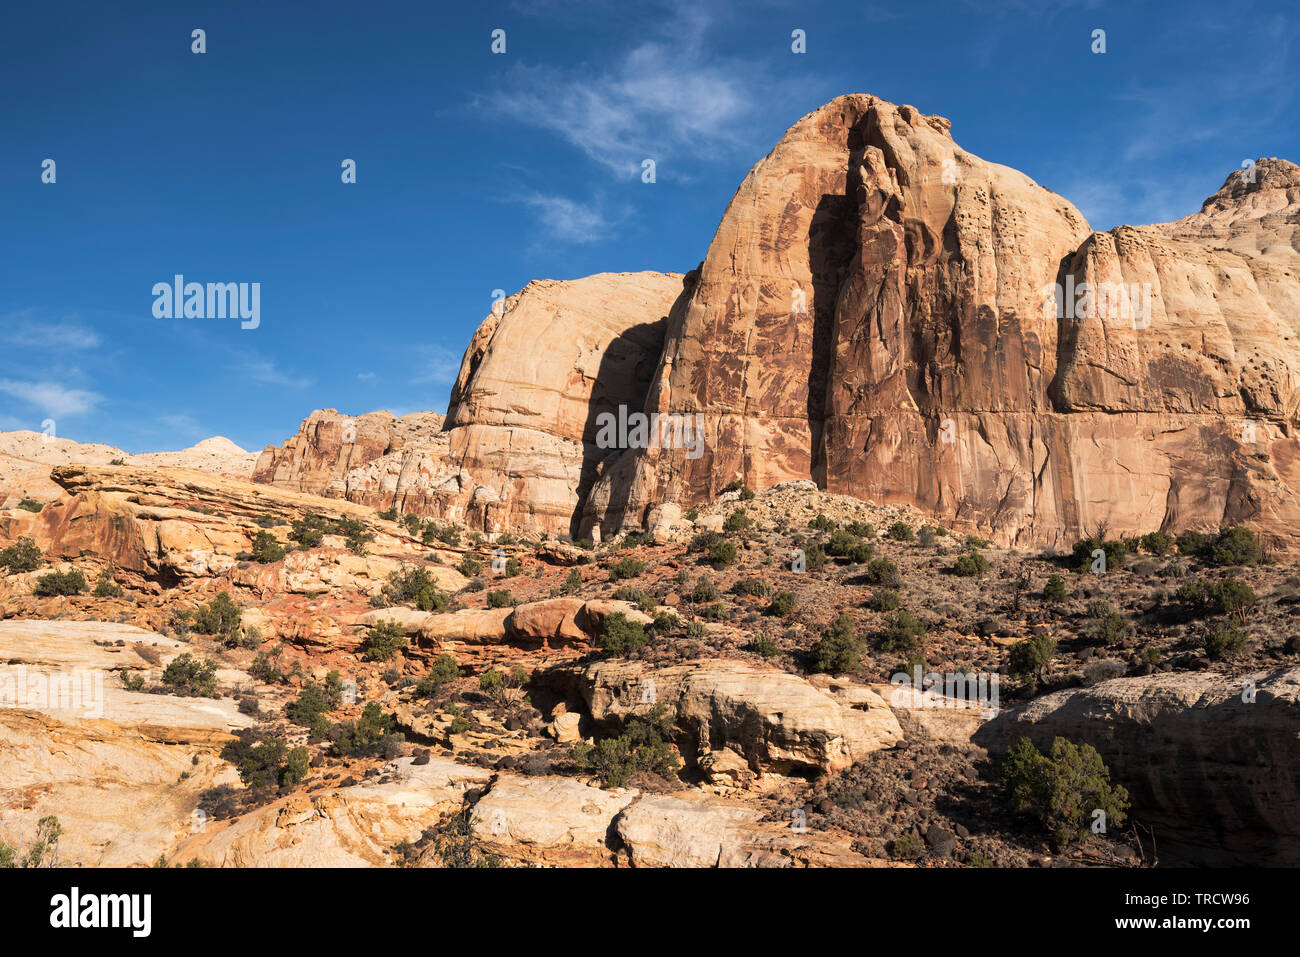 Navajo Dome is a large sandstone monolith located in Capital Reef National Park, Utah. Stock Photo